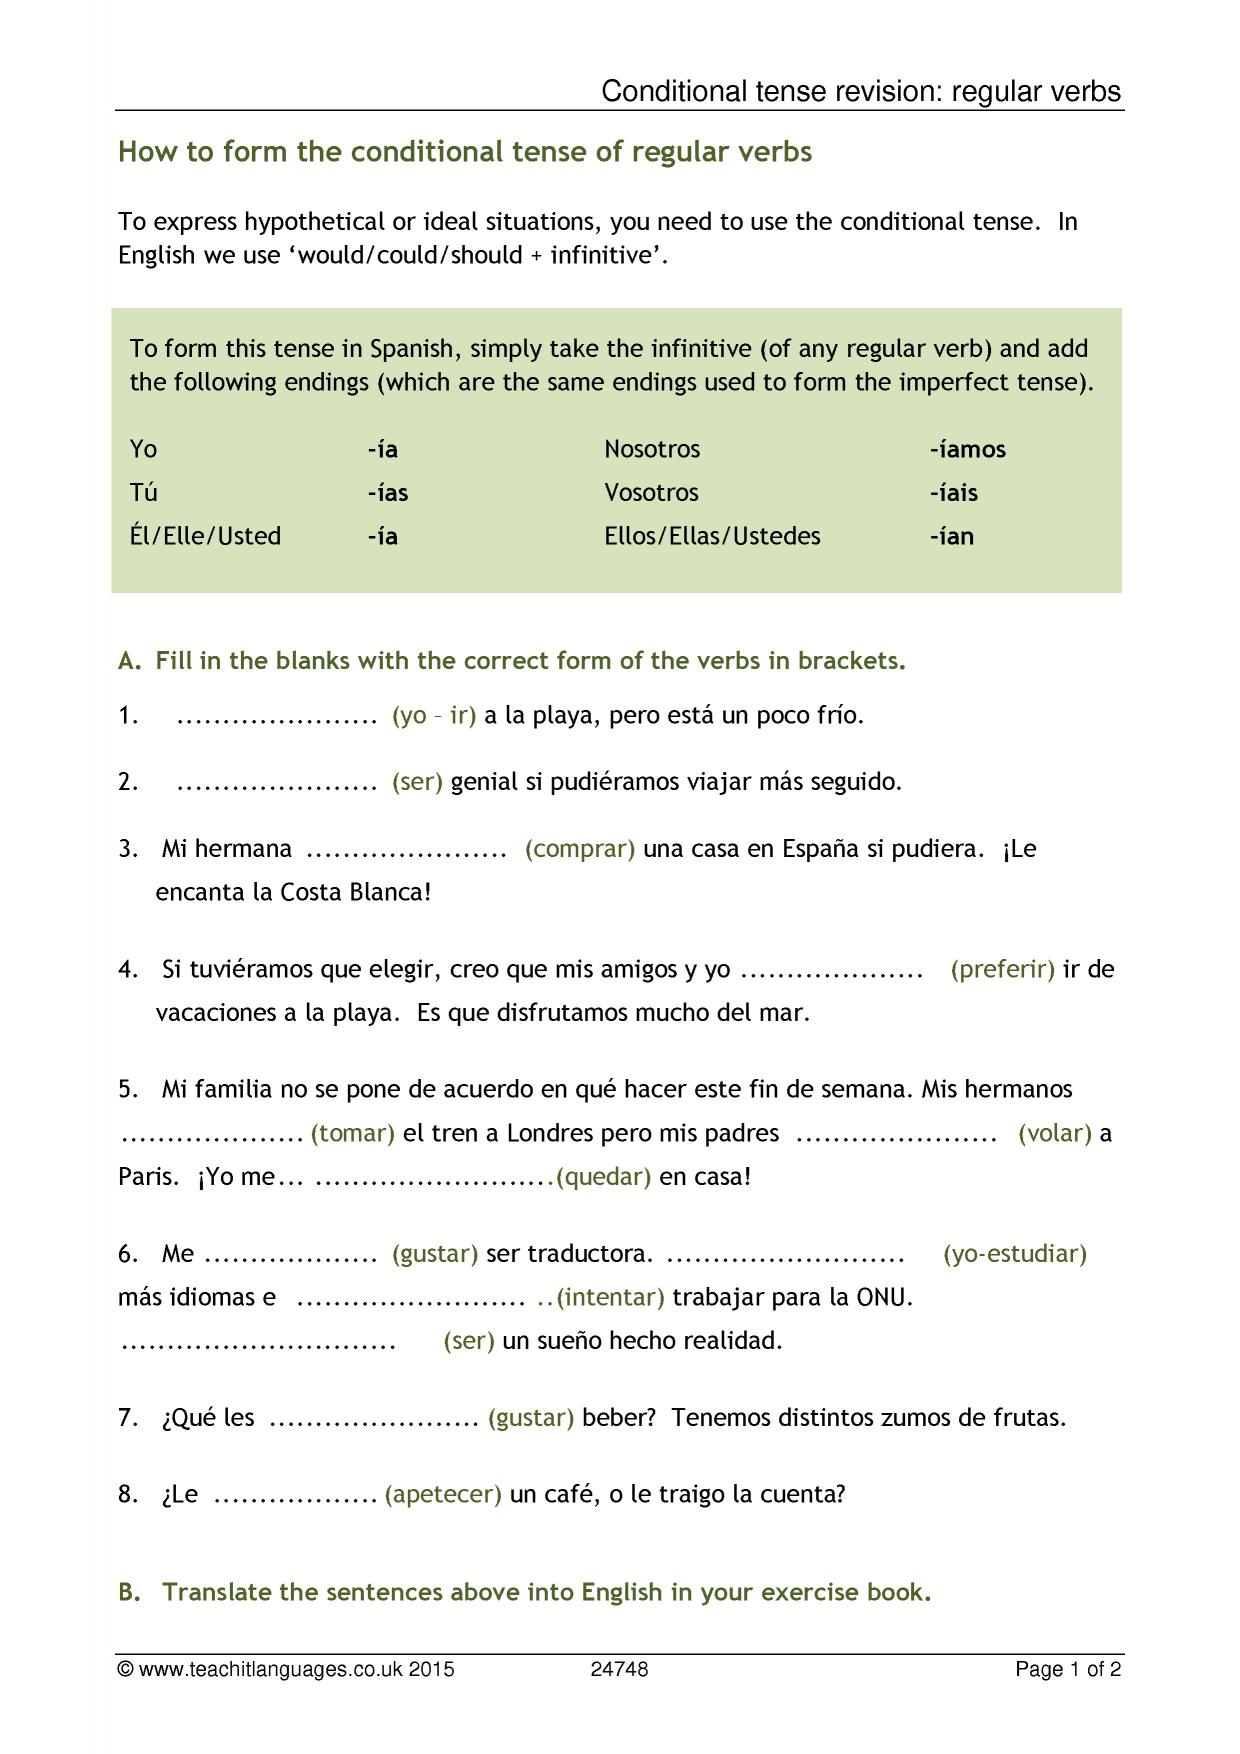 Conditional Tense Revision Regular Verbs